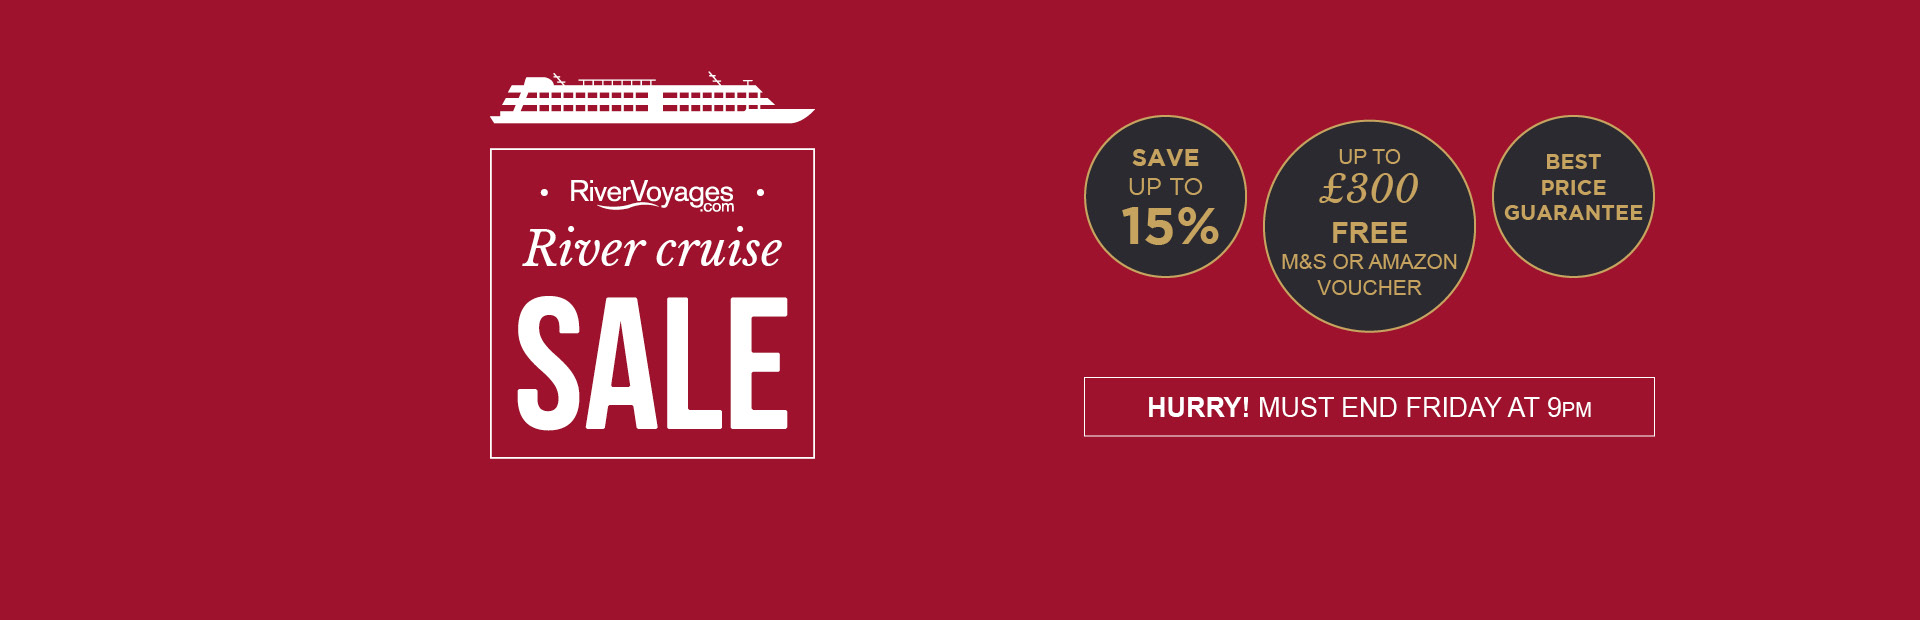 River Cruise Sale Ending